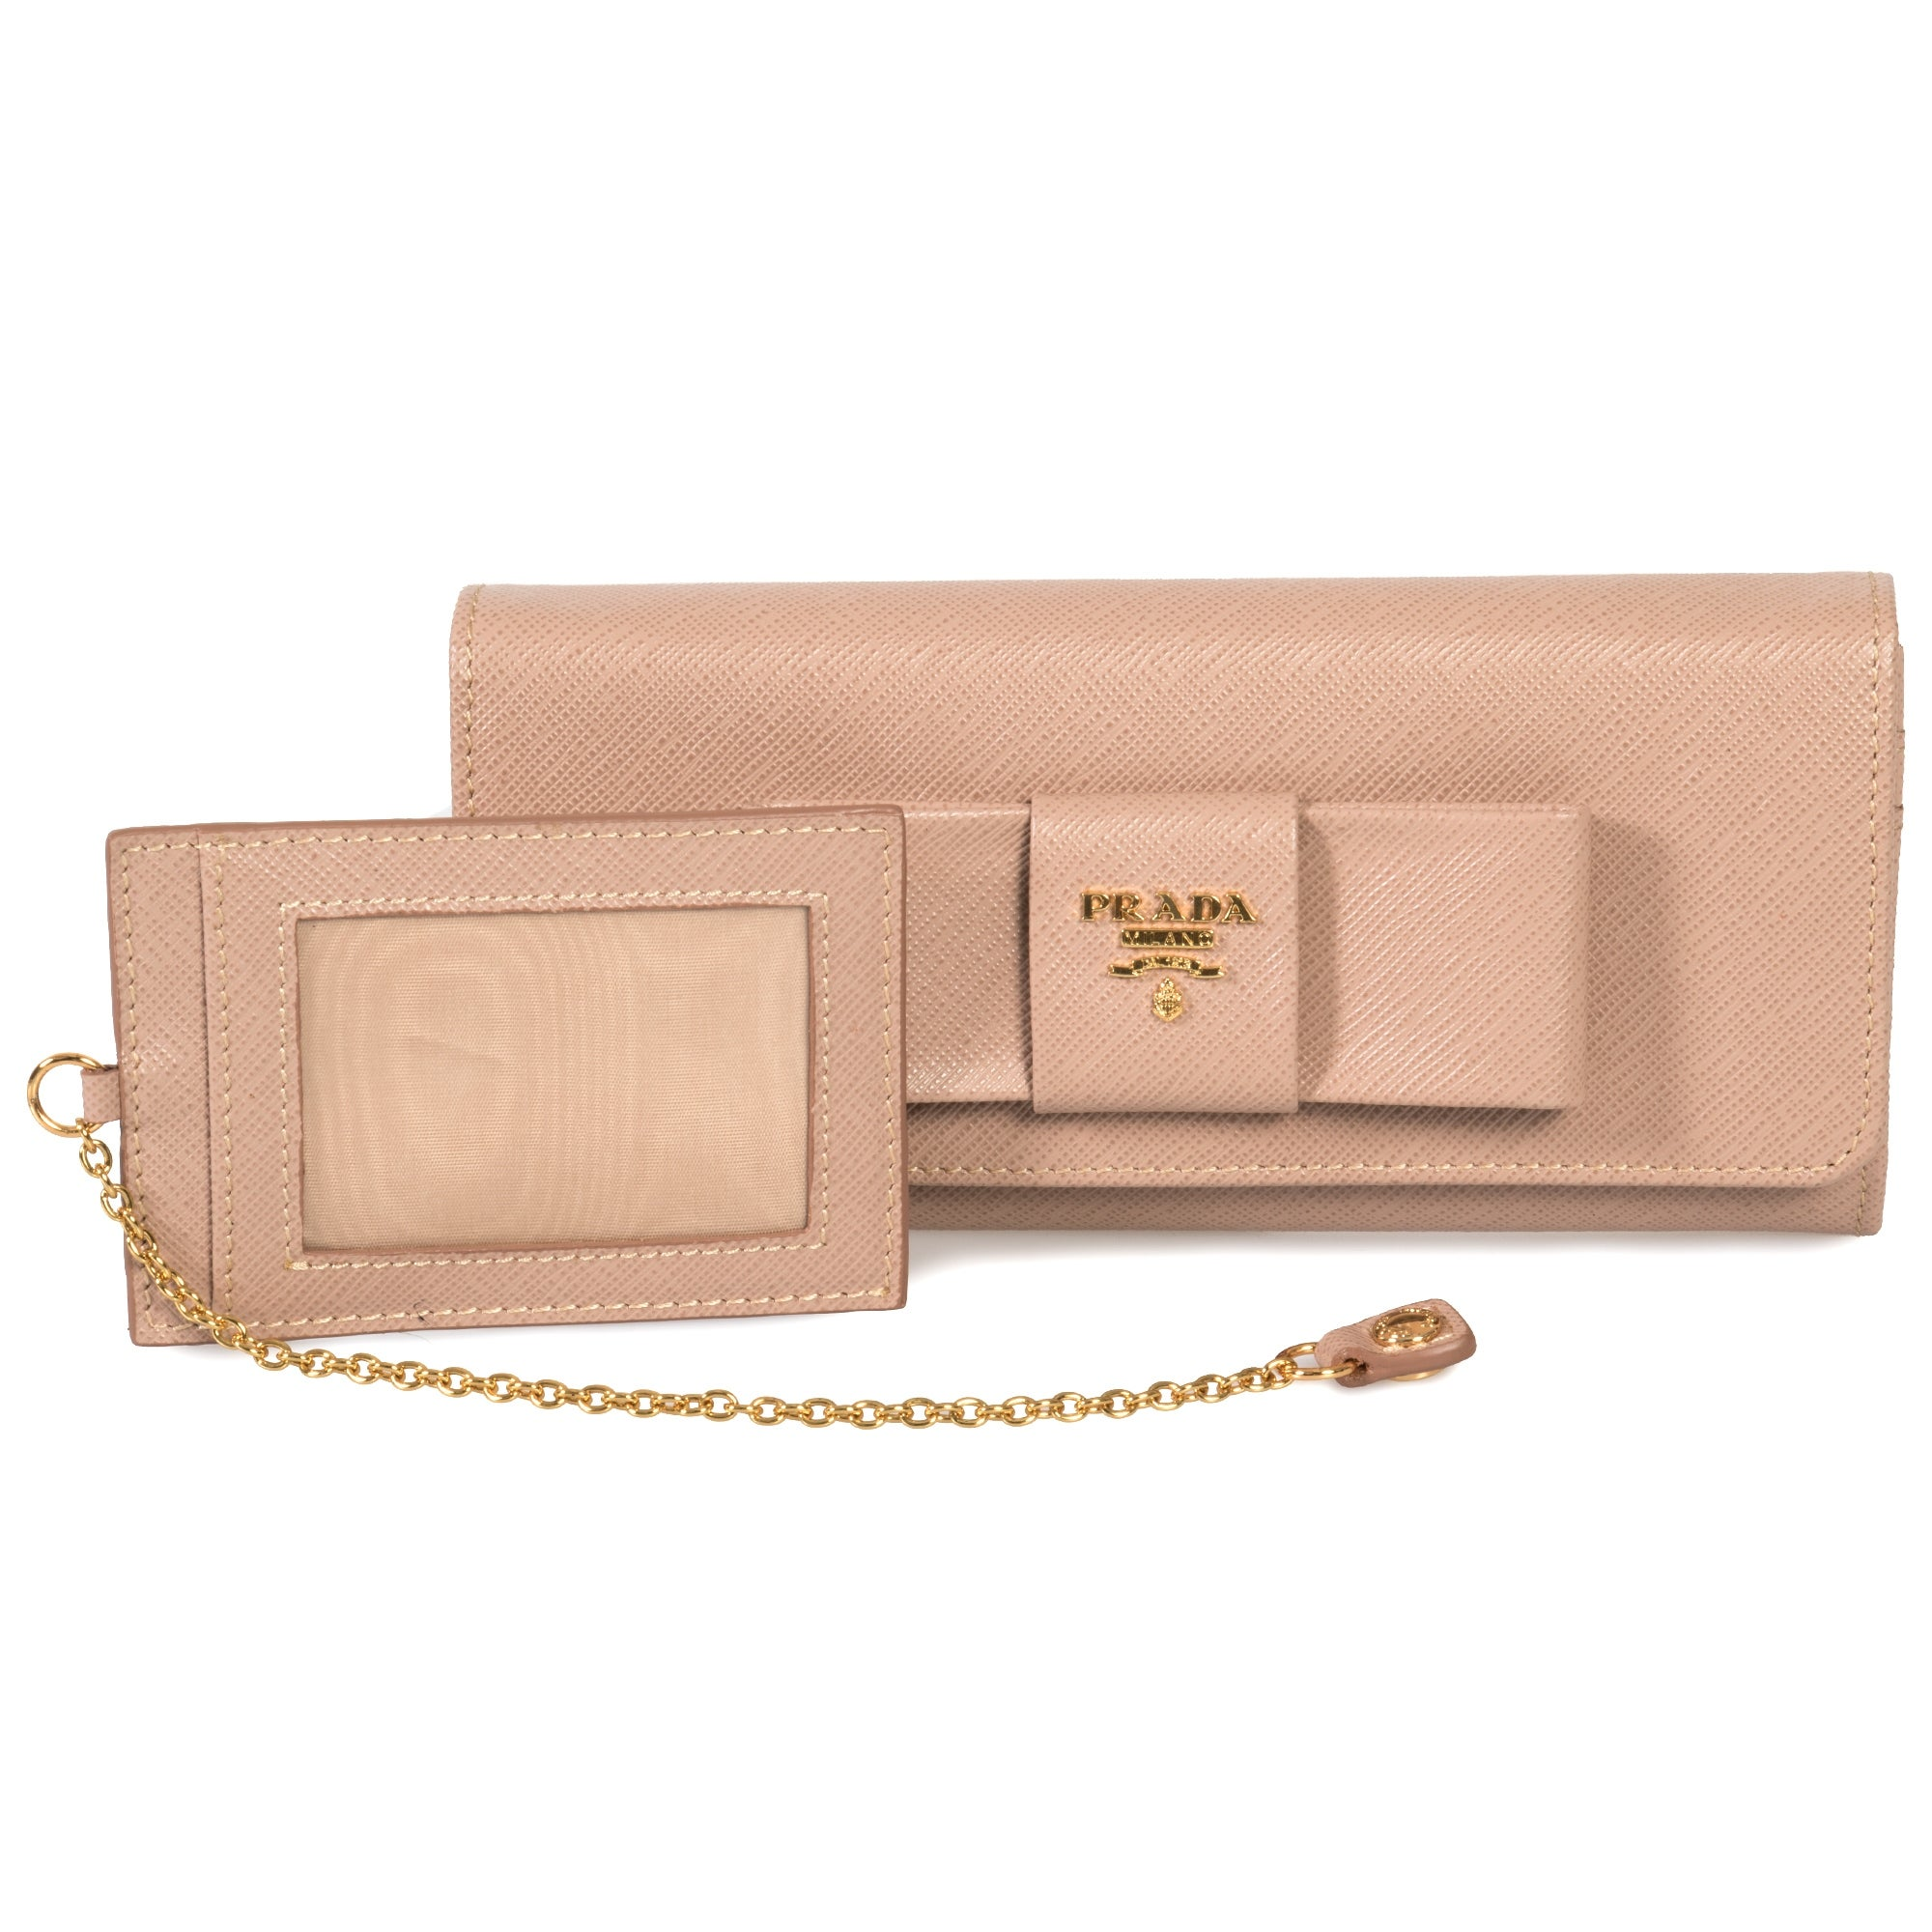 2edc74f68690 Prada Cameo Saffiano Leather Flap Wallet With Bow Detail 1MH132 ZTM F0770